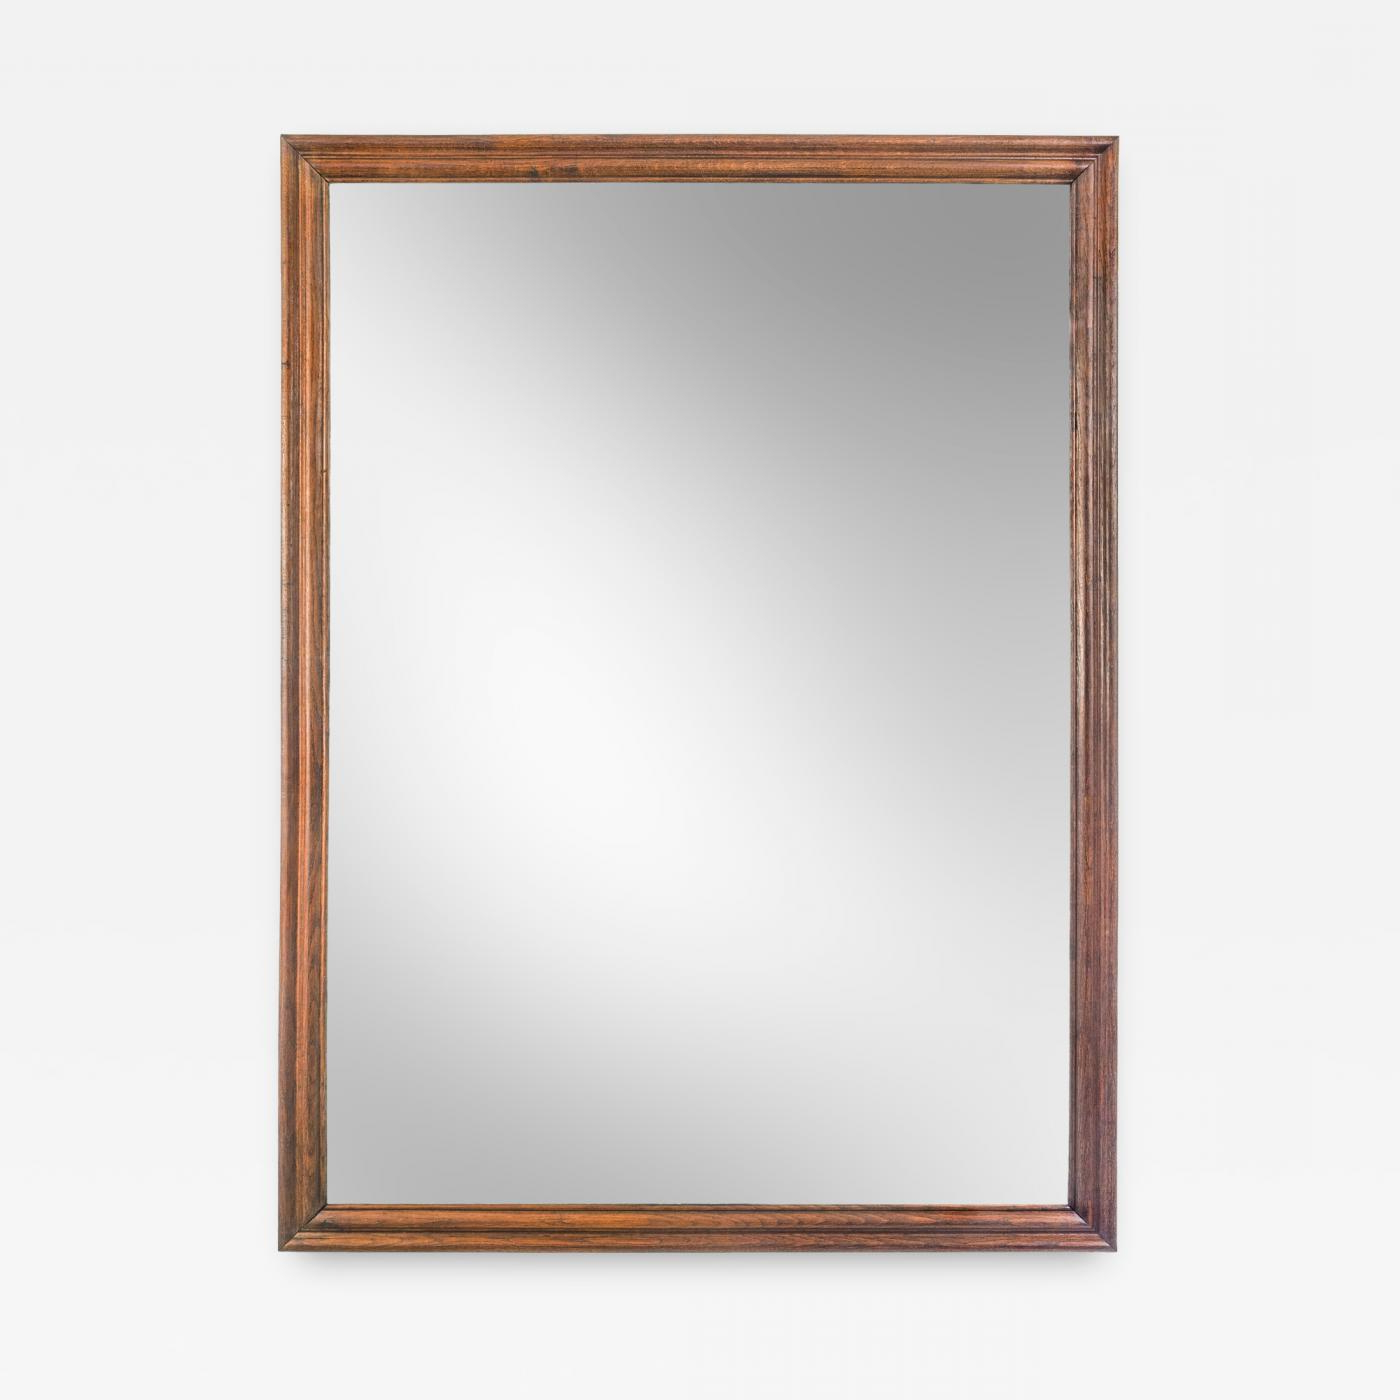 Widely Used Oak Framed Wall Mirrors In An English Large Oak Framed Mirror With Antique Glass (View 9 of 20)